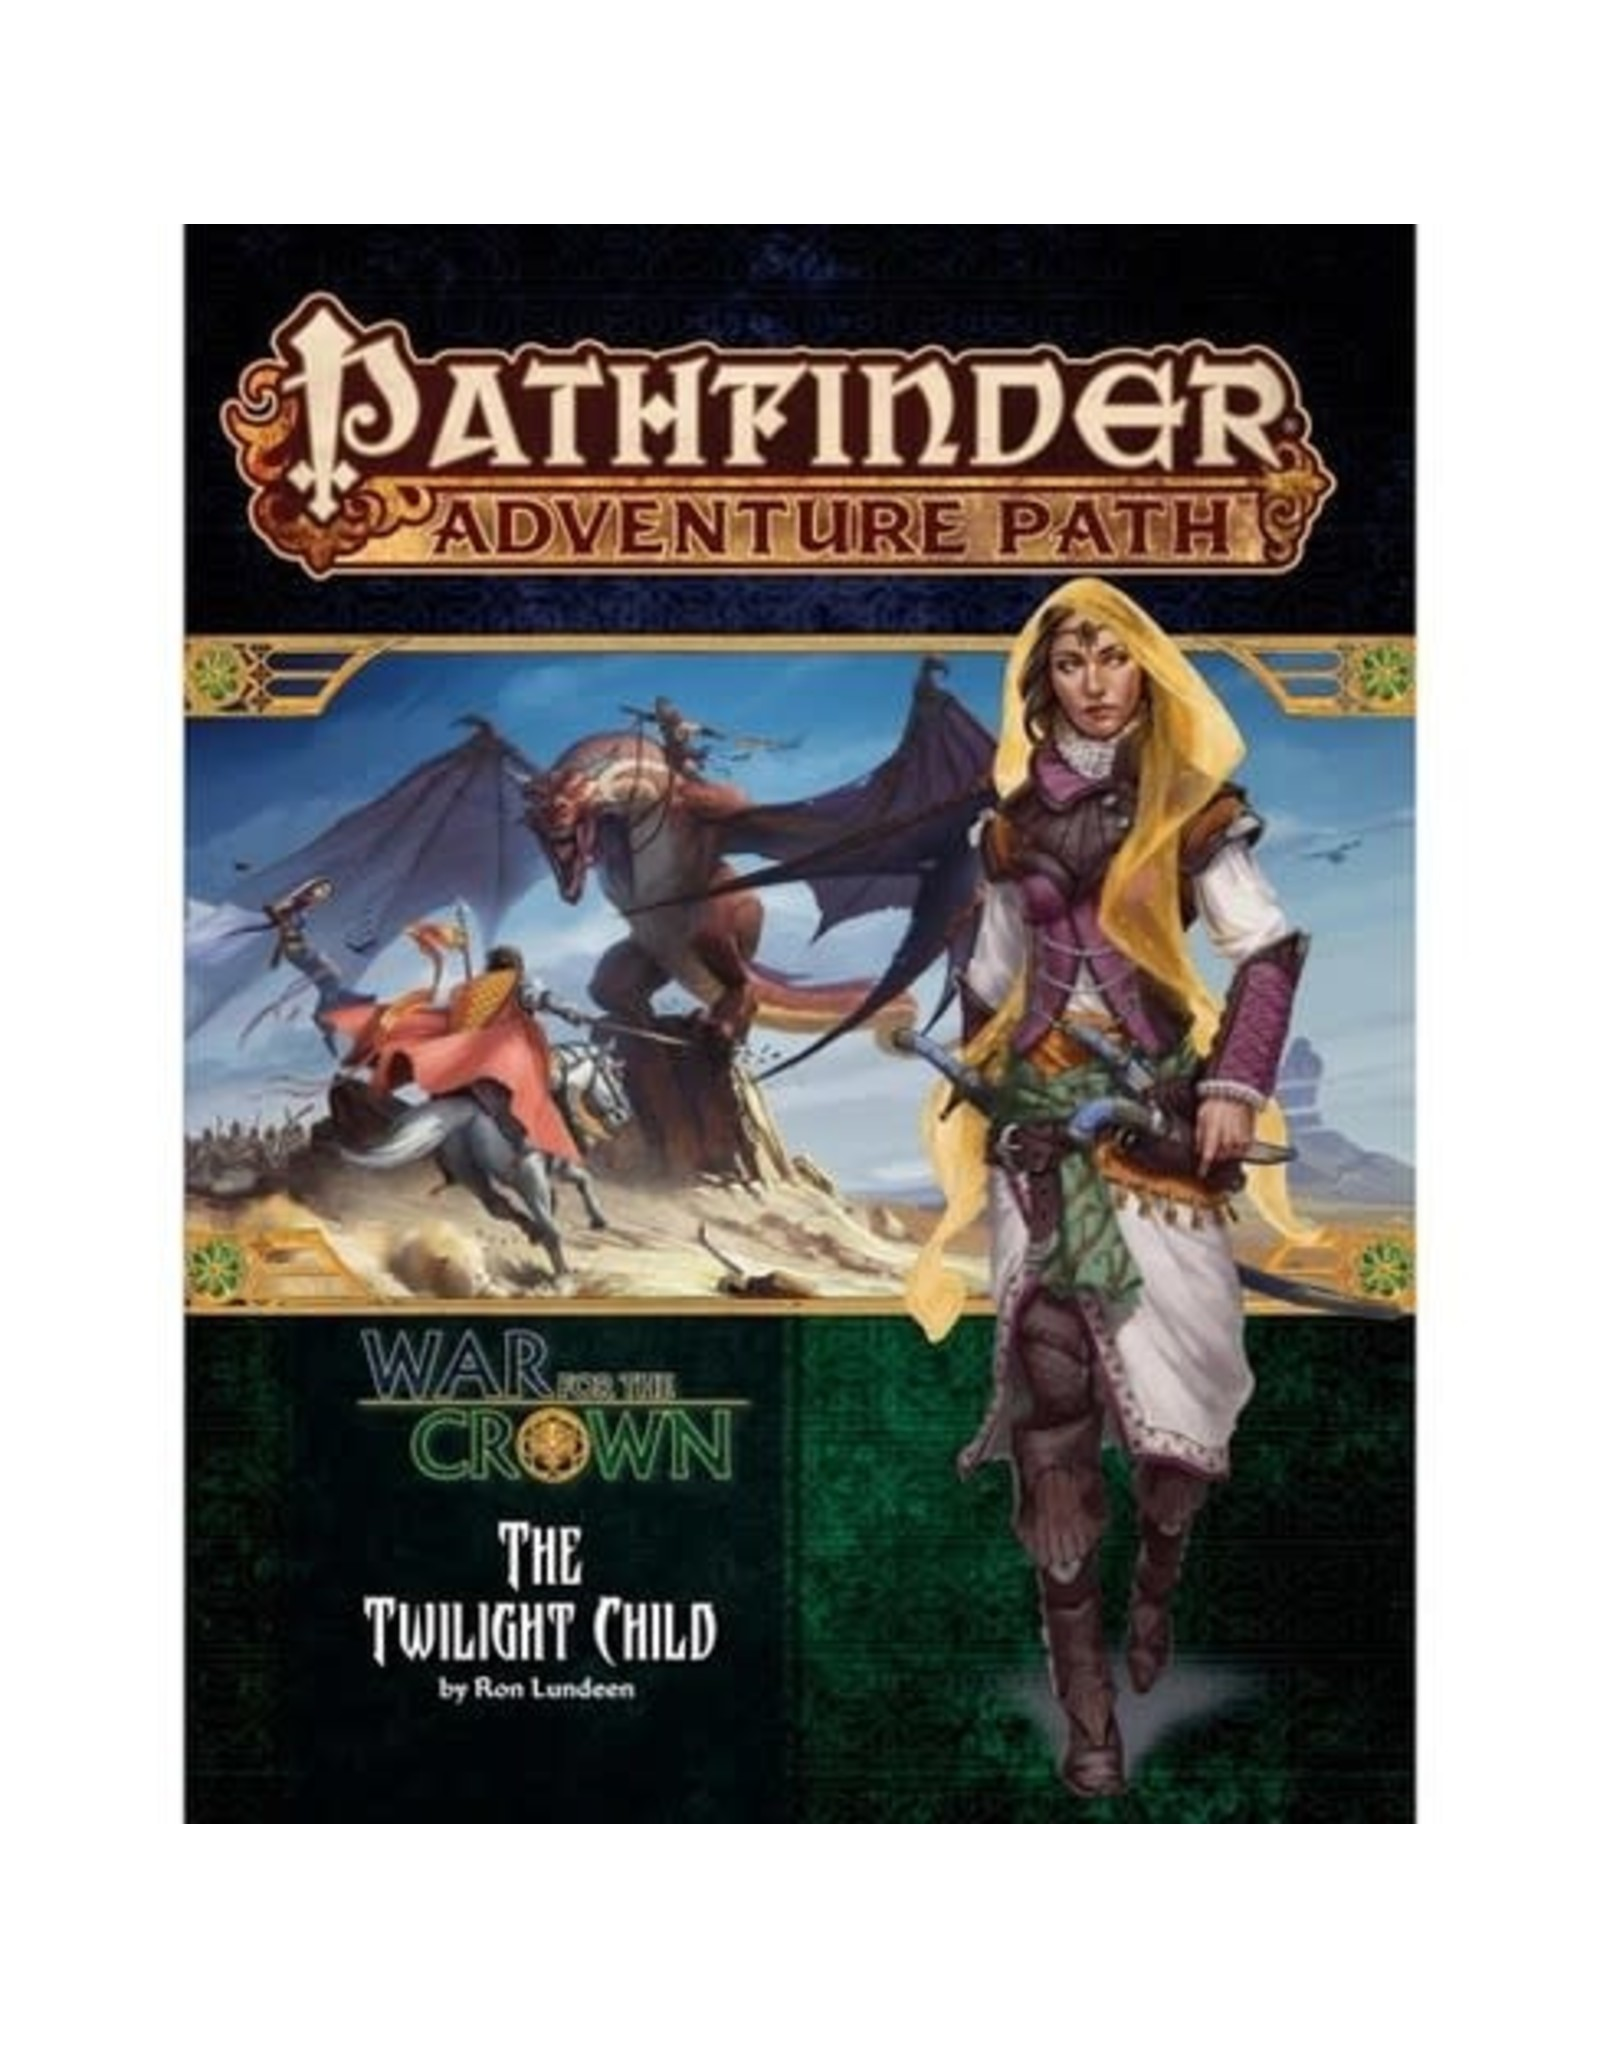 Pathfinder Adventure Path: War for the Crown #3 - Twilight Child